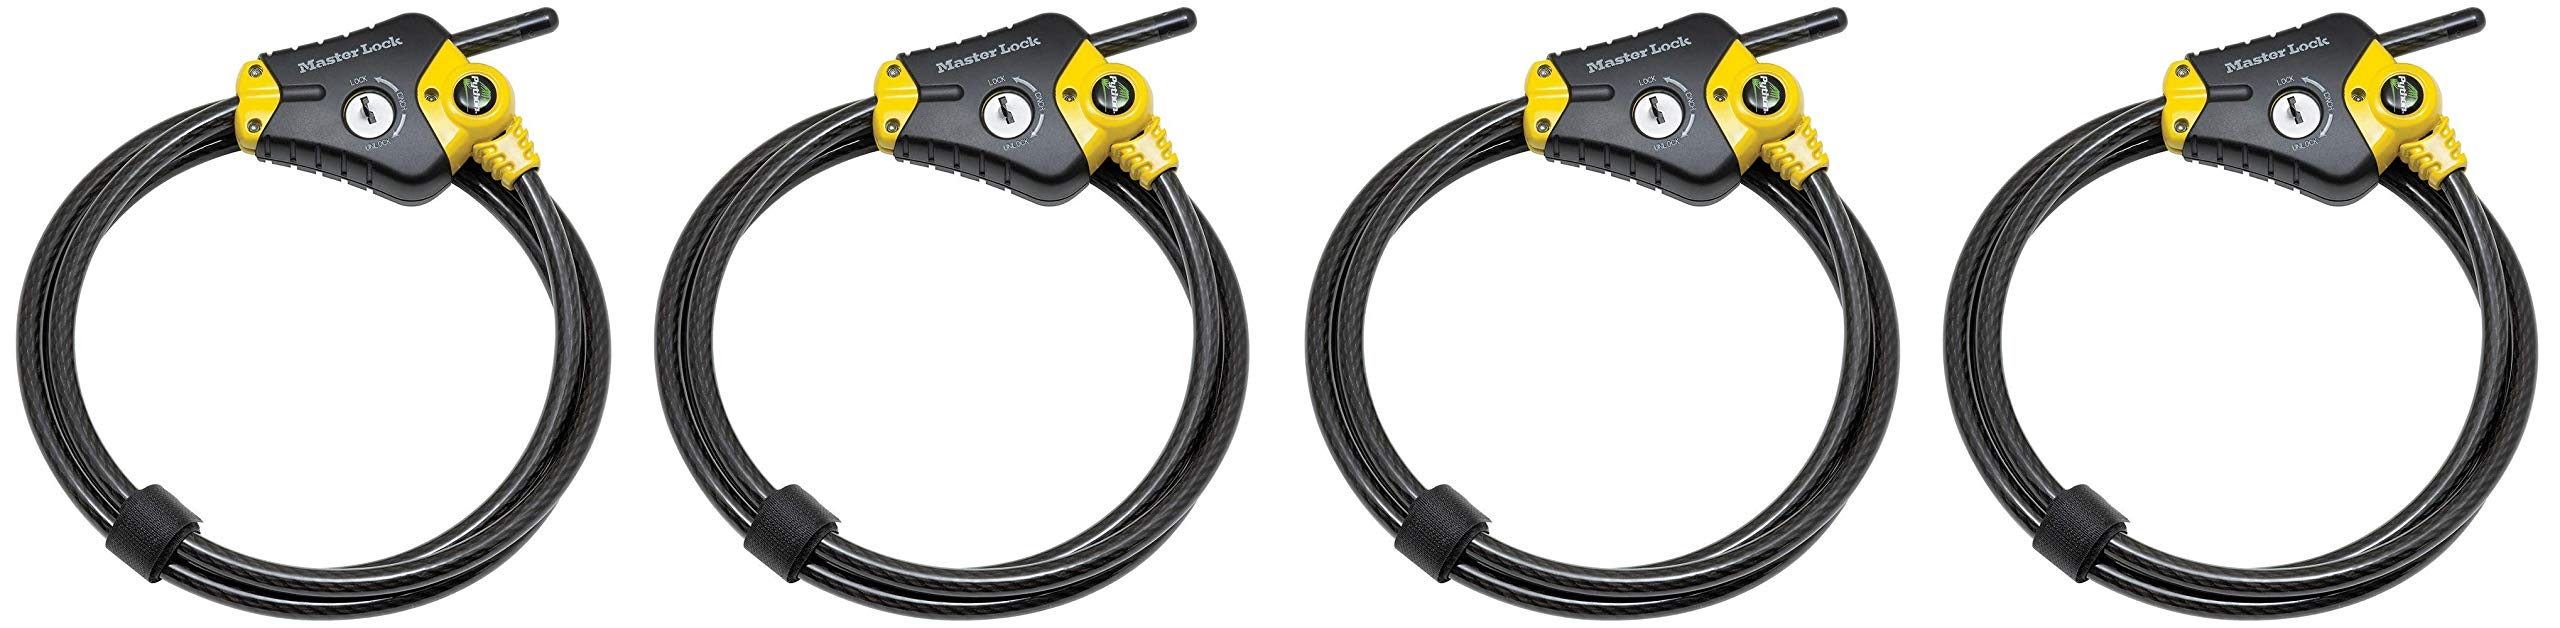 Master Lock Cable Lock, Python Adjustable Keyed Cable Lock, 6 ft. Long, 8413DPF (Pack of 4)